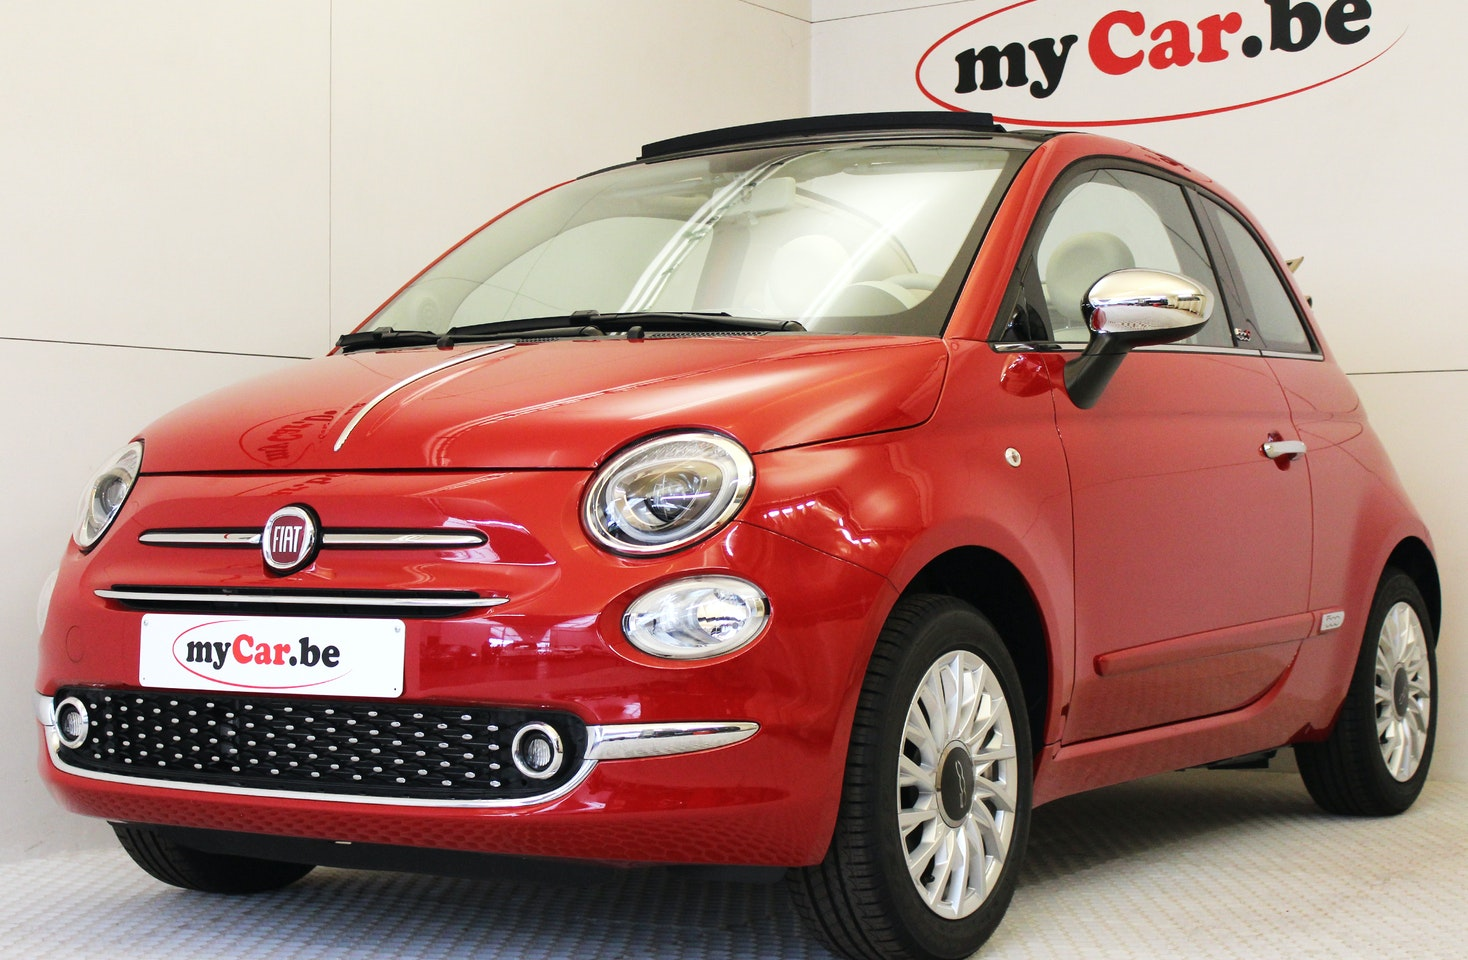 Fiat 500c Lounge Plus Is The Specialist In Almost New 500 Spare Tire Location Next